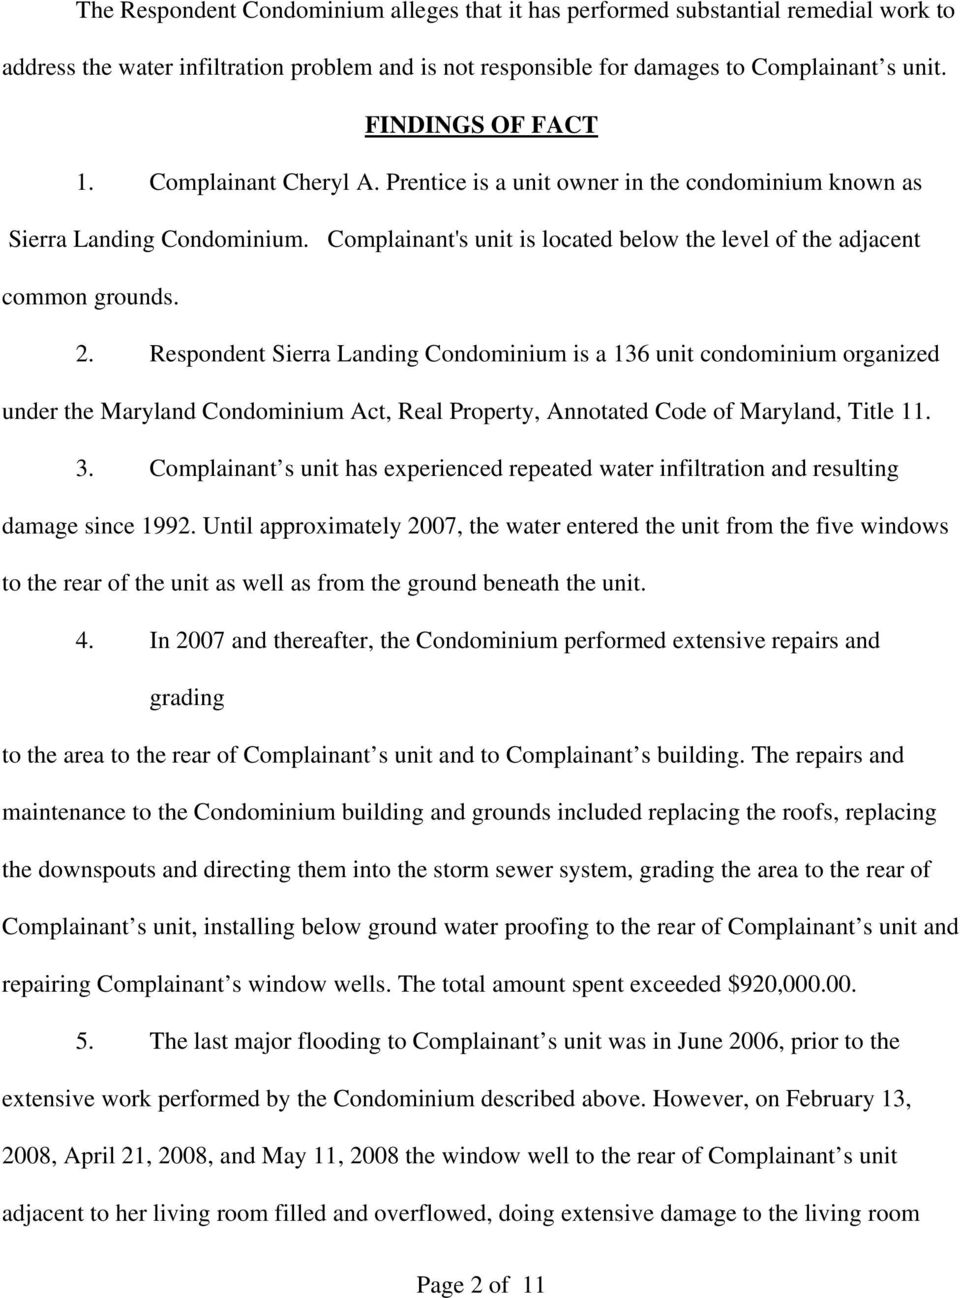 2. Respondent Sierra Landing Condominium is a 136 unit condominium organized under the Maryland Condominium Act, Real Property, Annotated Code of Maryland, Title 11. 3.